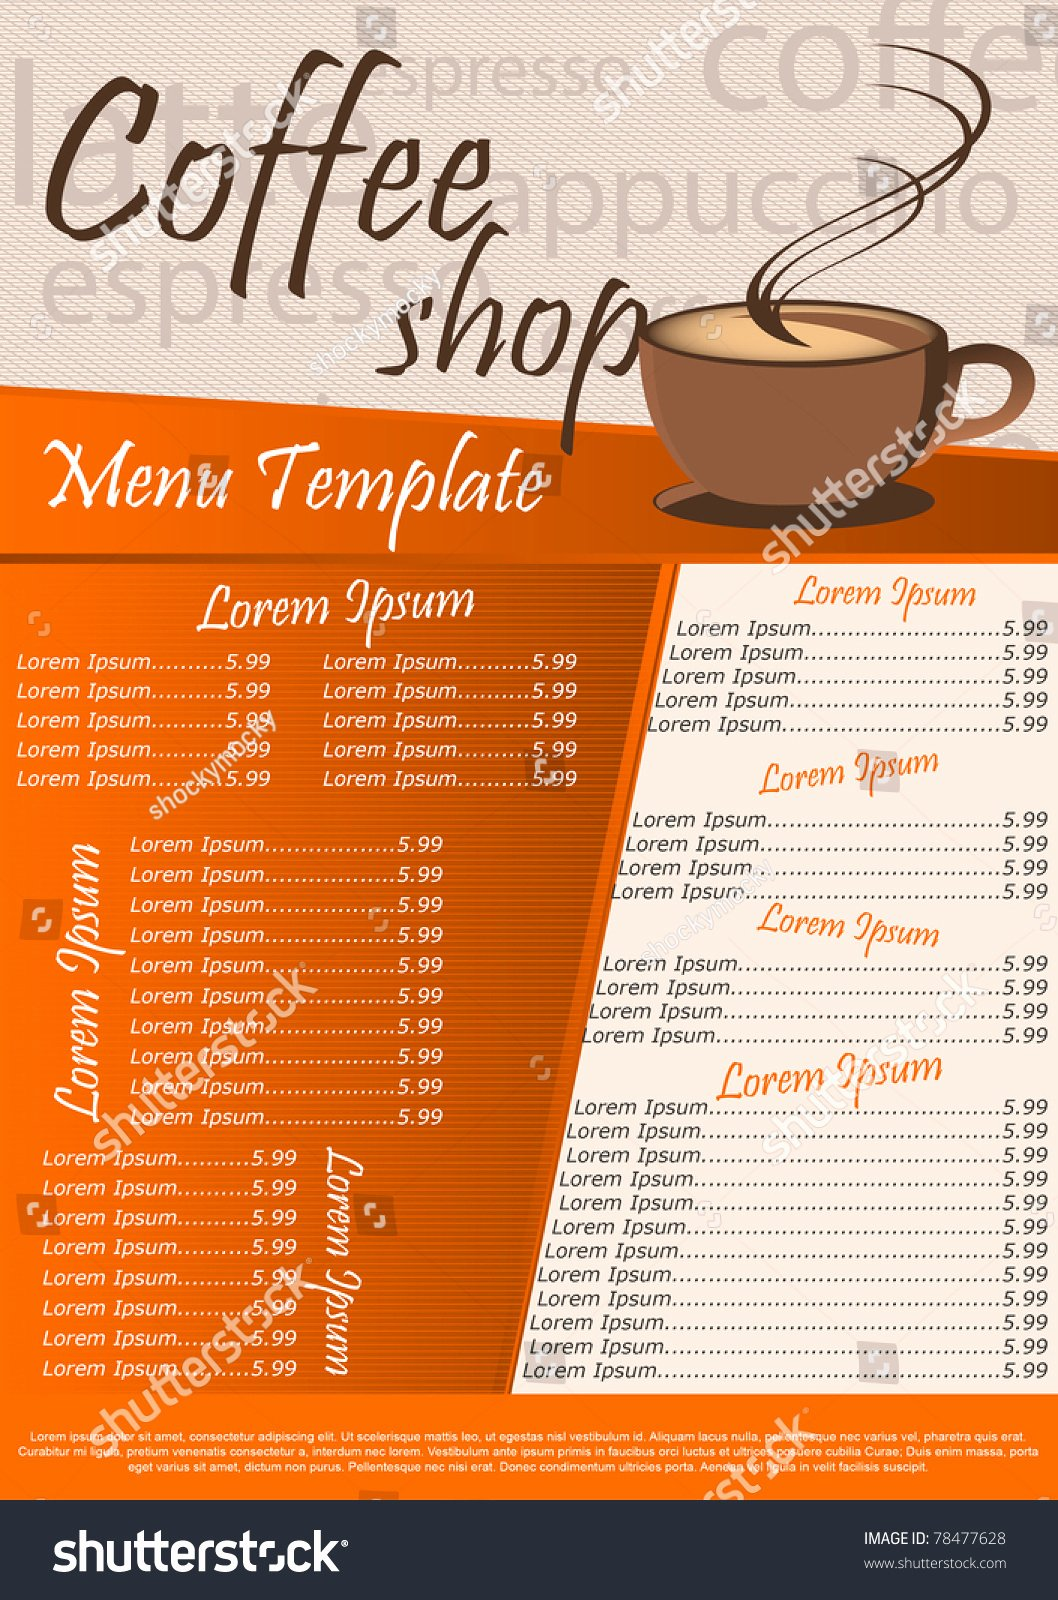 Coffee Shop Menu Template New Coffee Shop Menu Template Vector Illustration Stock Vector